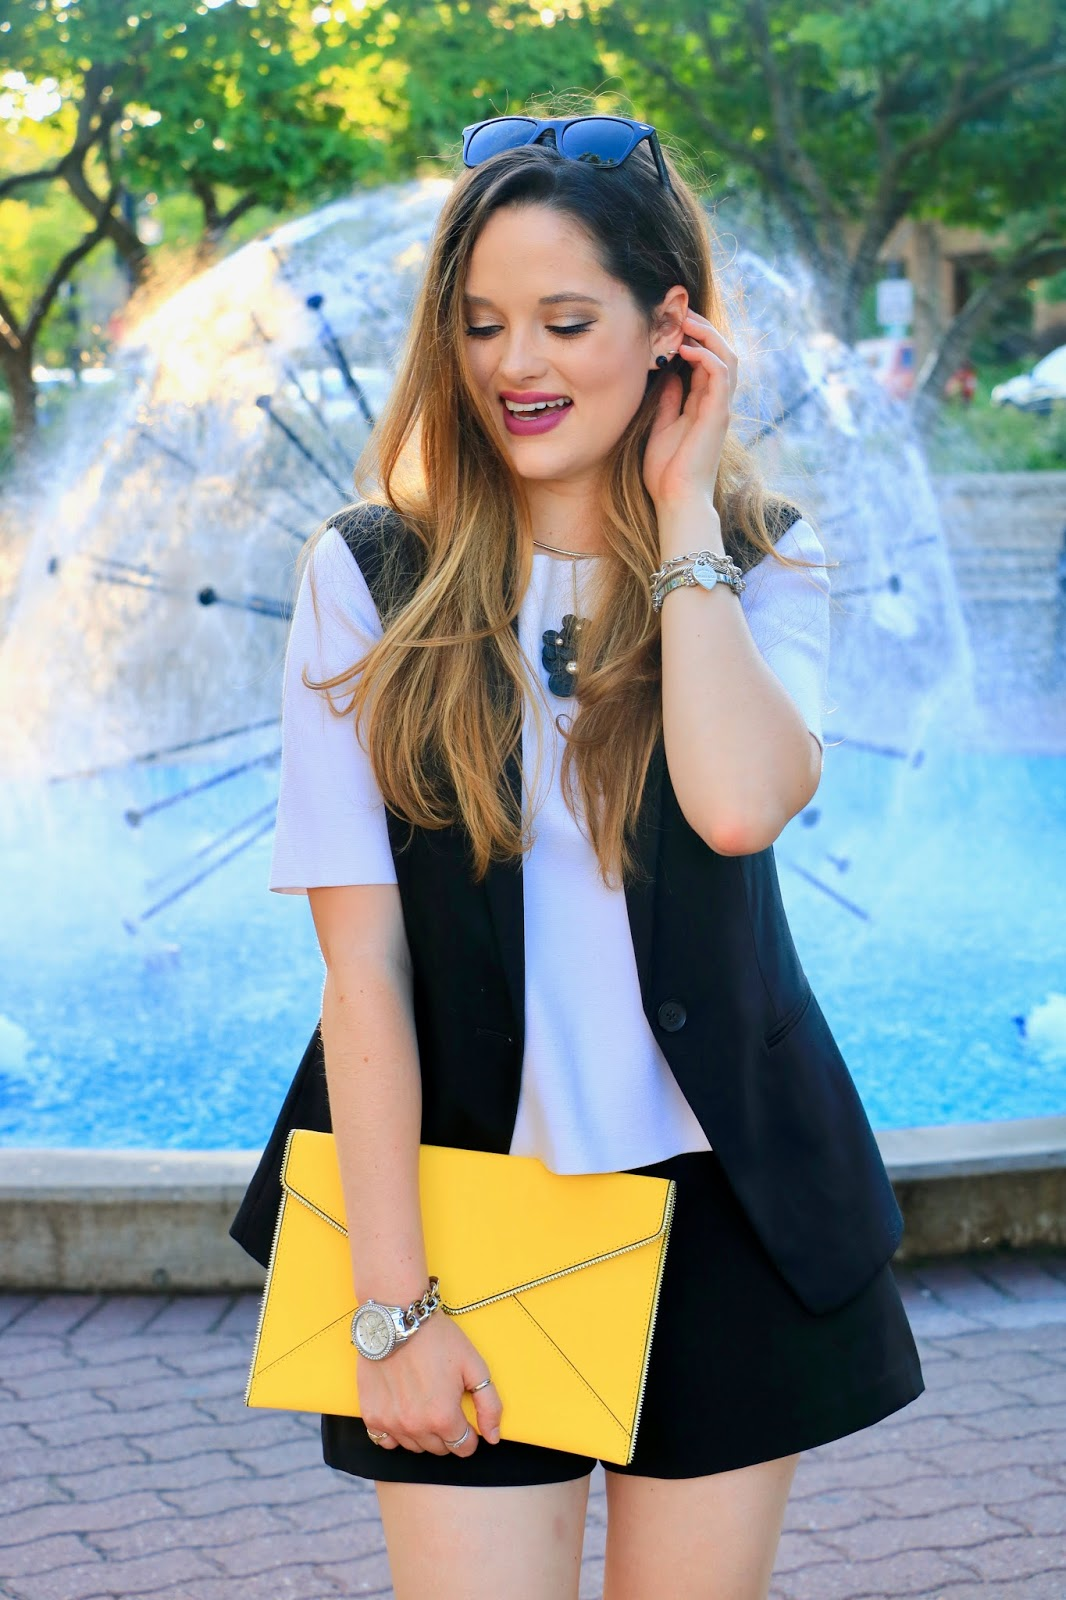 NYC fashion blogger Kathleen Harper of Kat's Fashion Fix summer outfit ideas